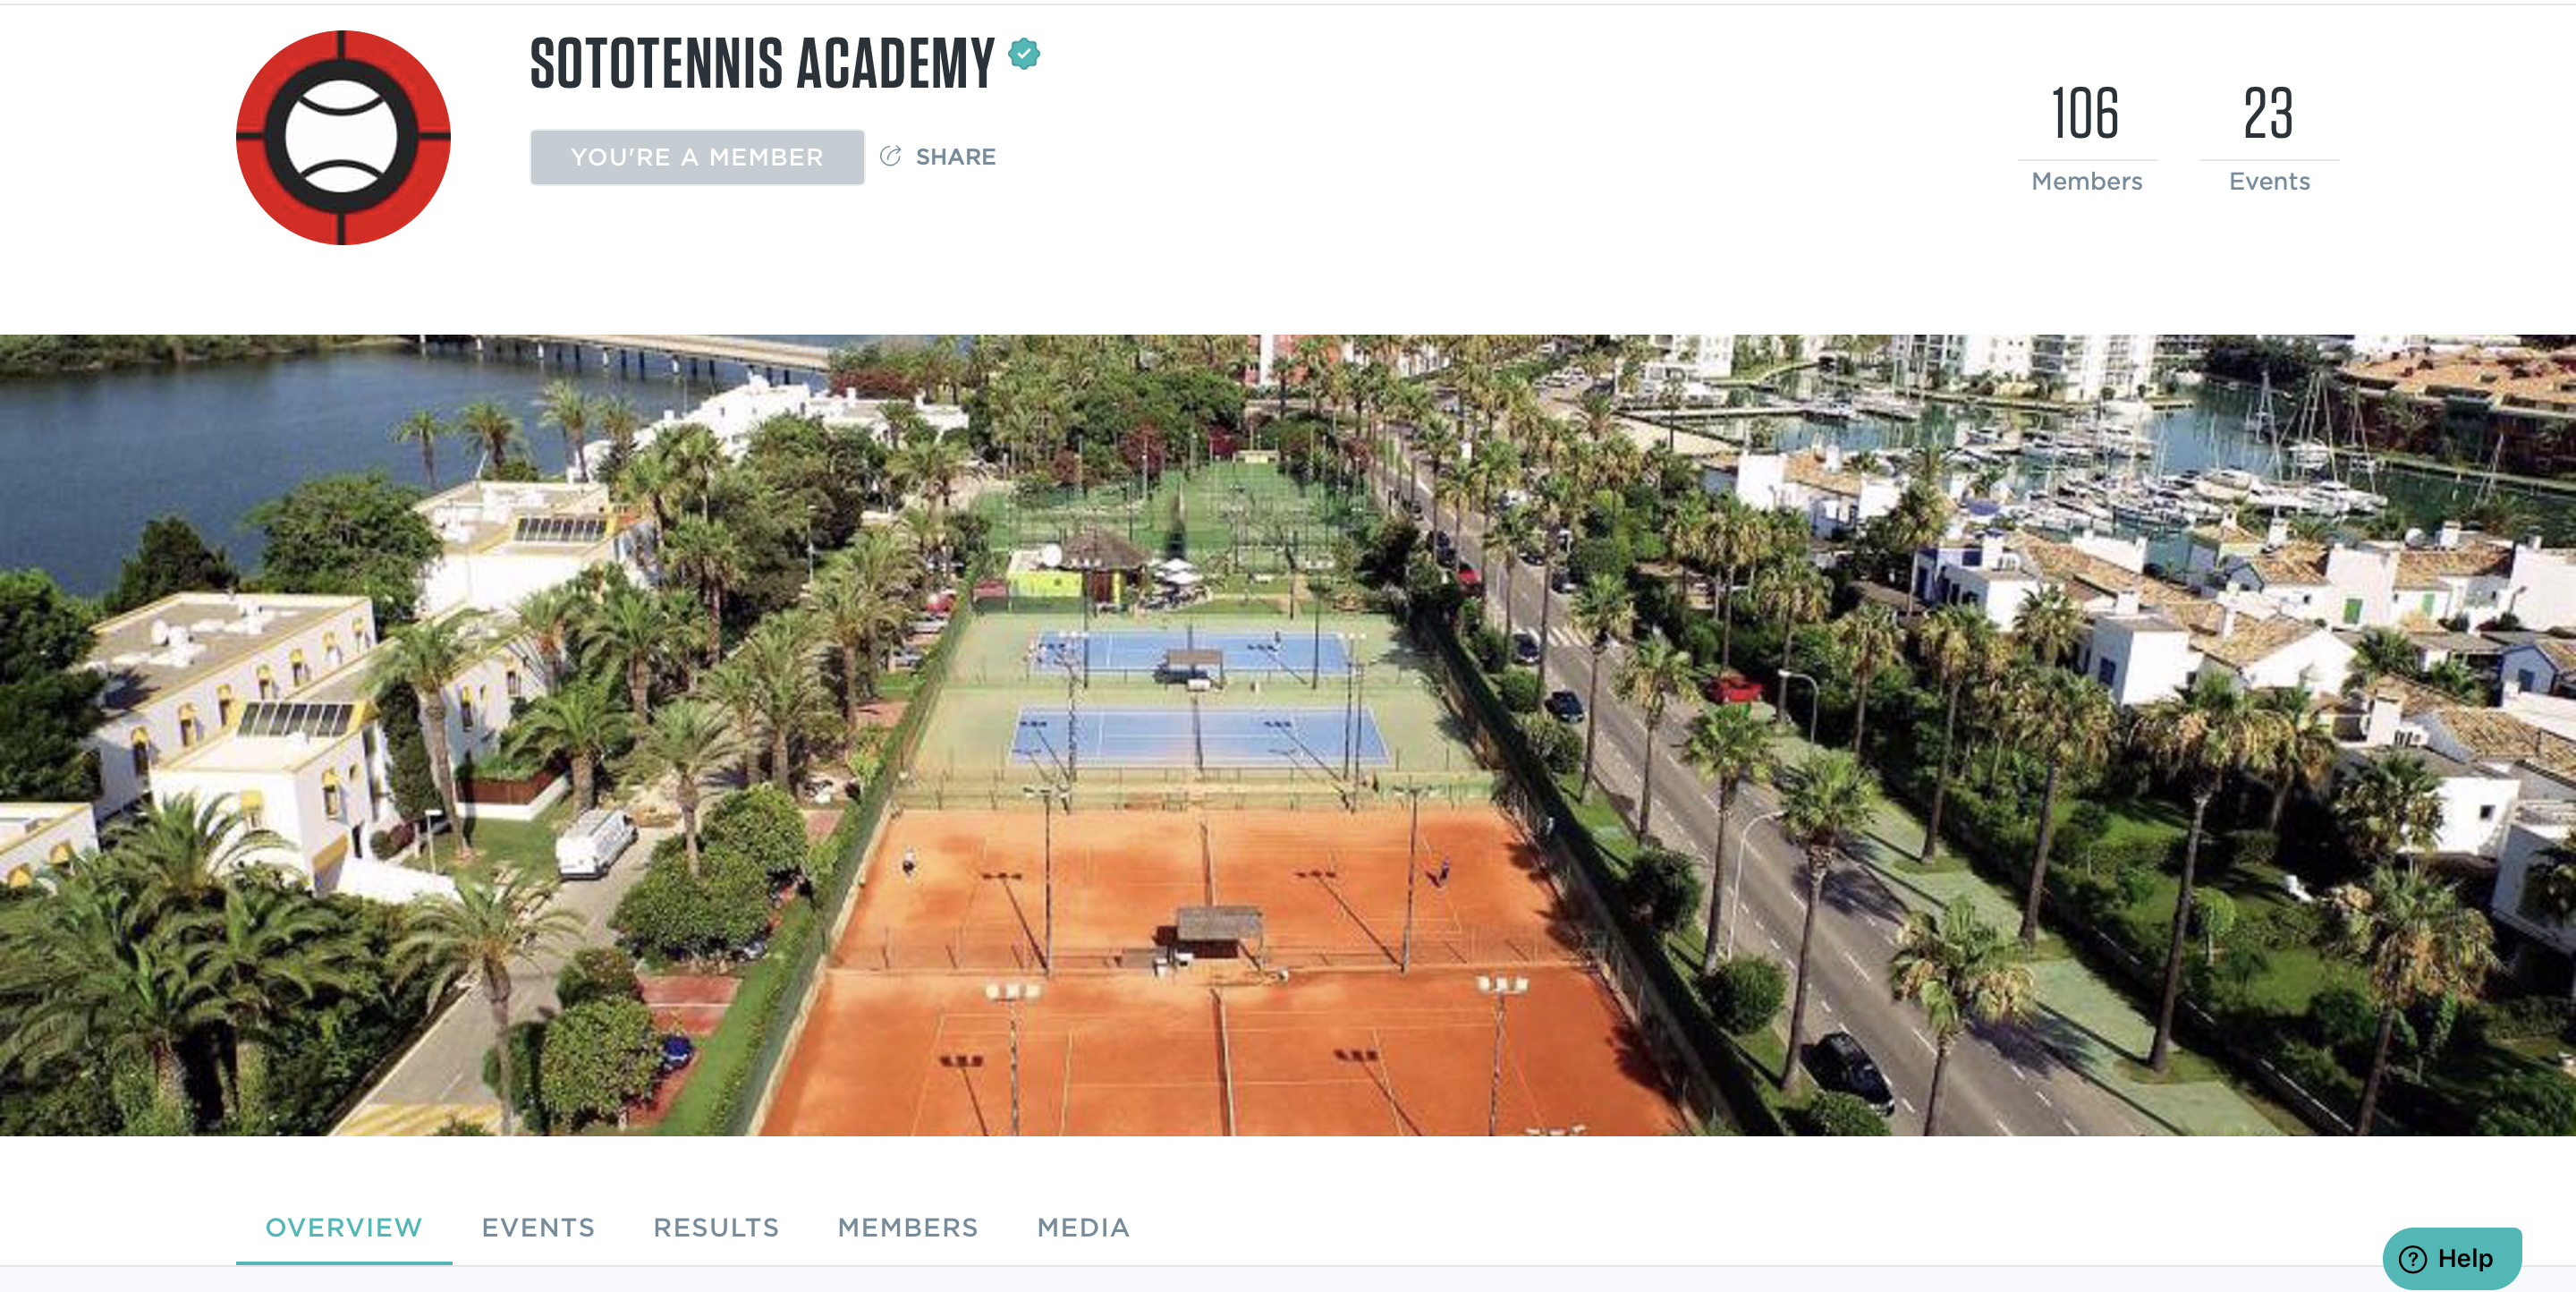 UTR SotoTennis Academy events